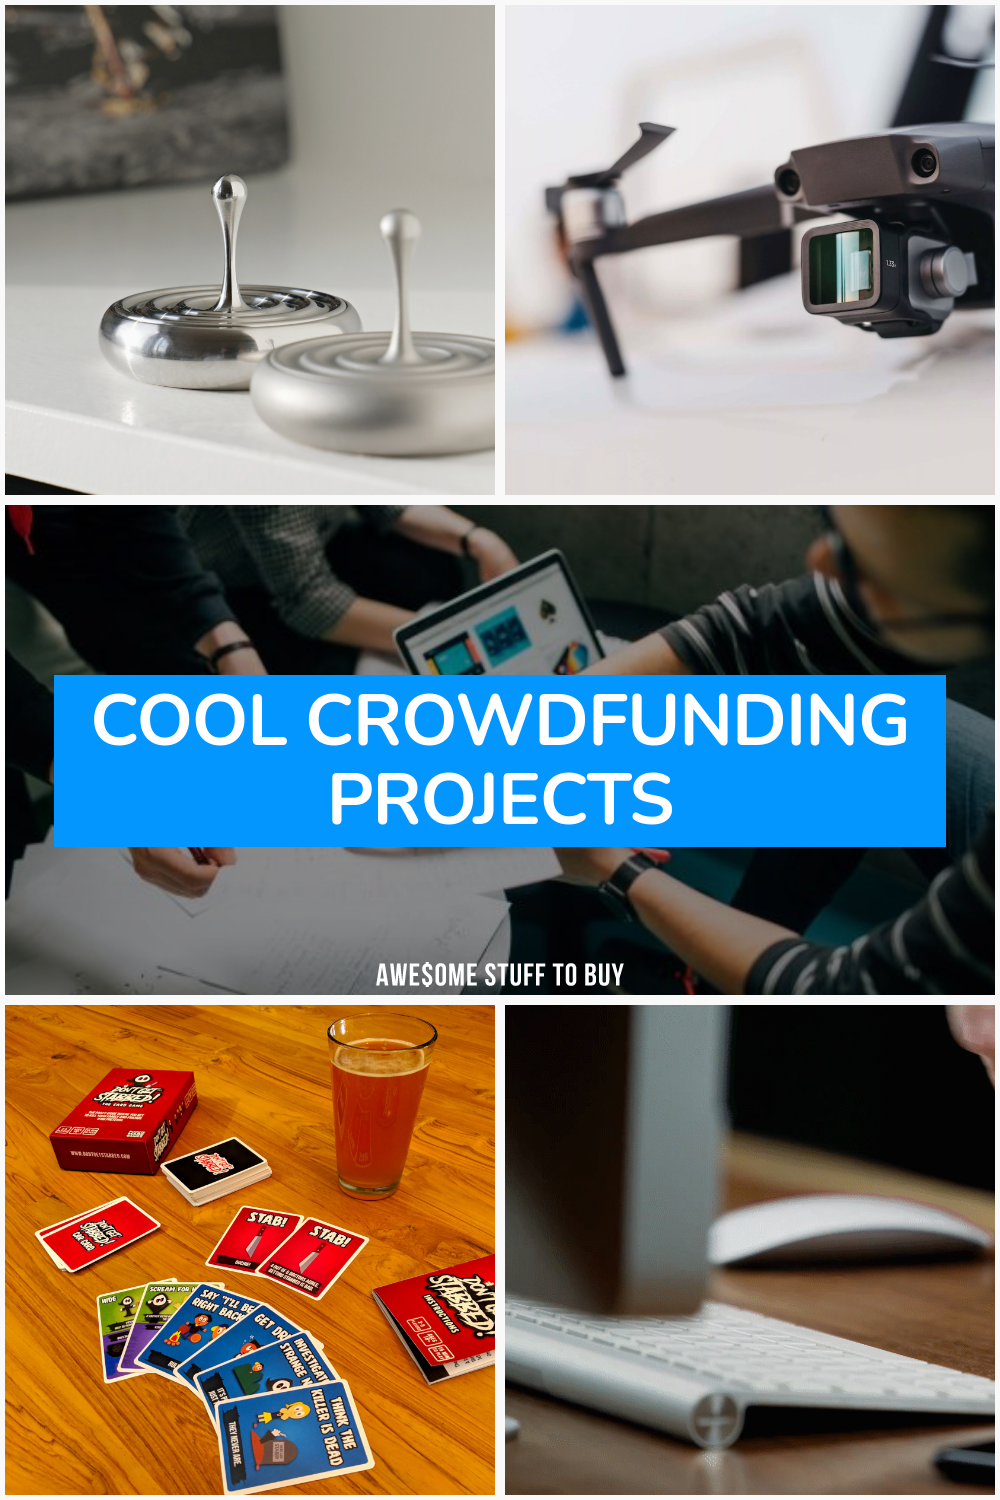 Cool Crowdfunding Projects // Awesome Stuff to Buy